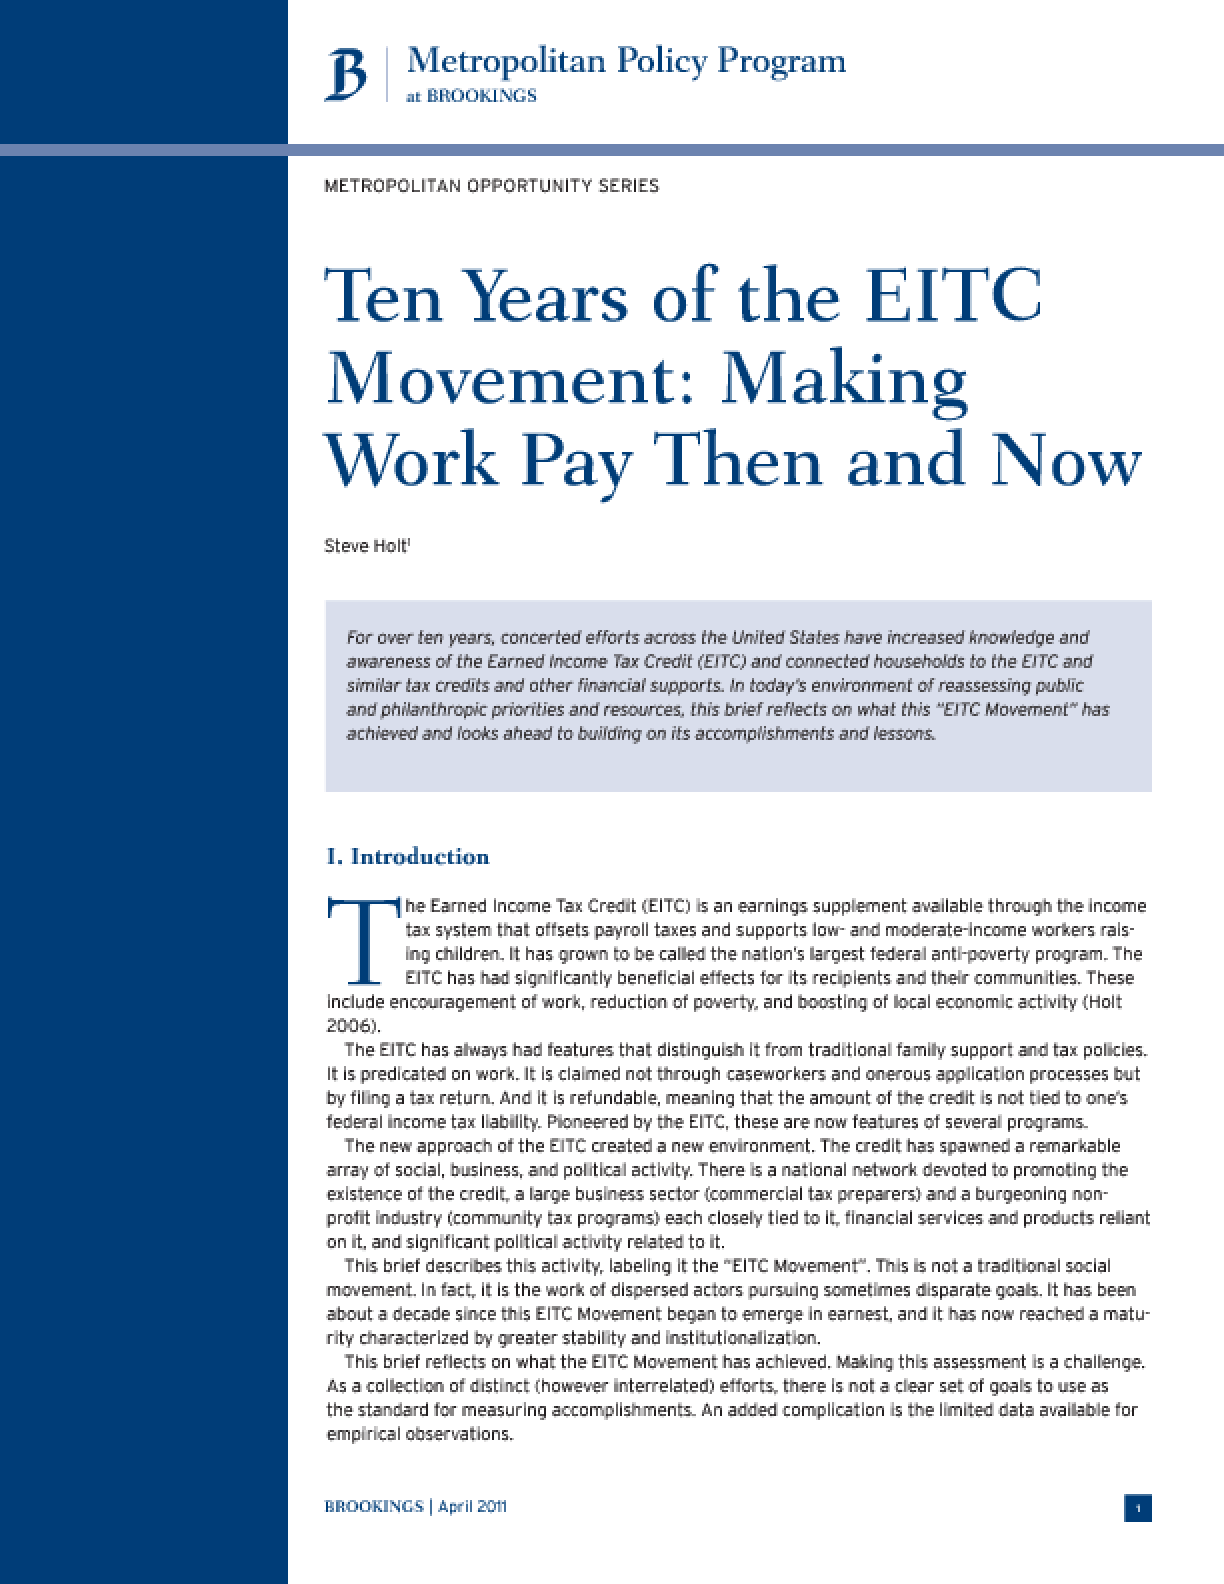 Ten Years of the EITC Movement: Making Work Pay Then and Now